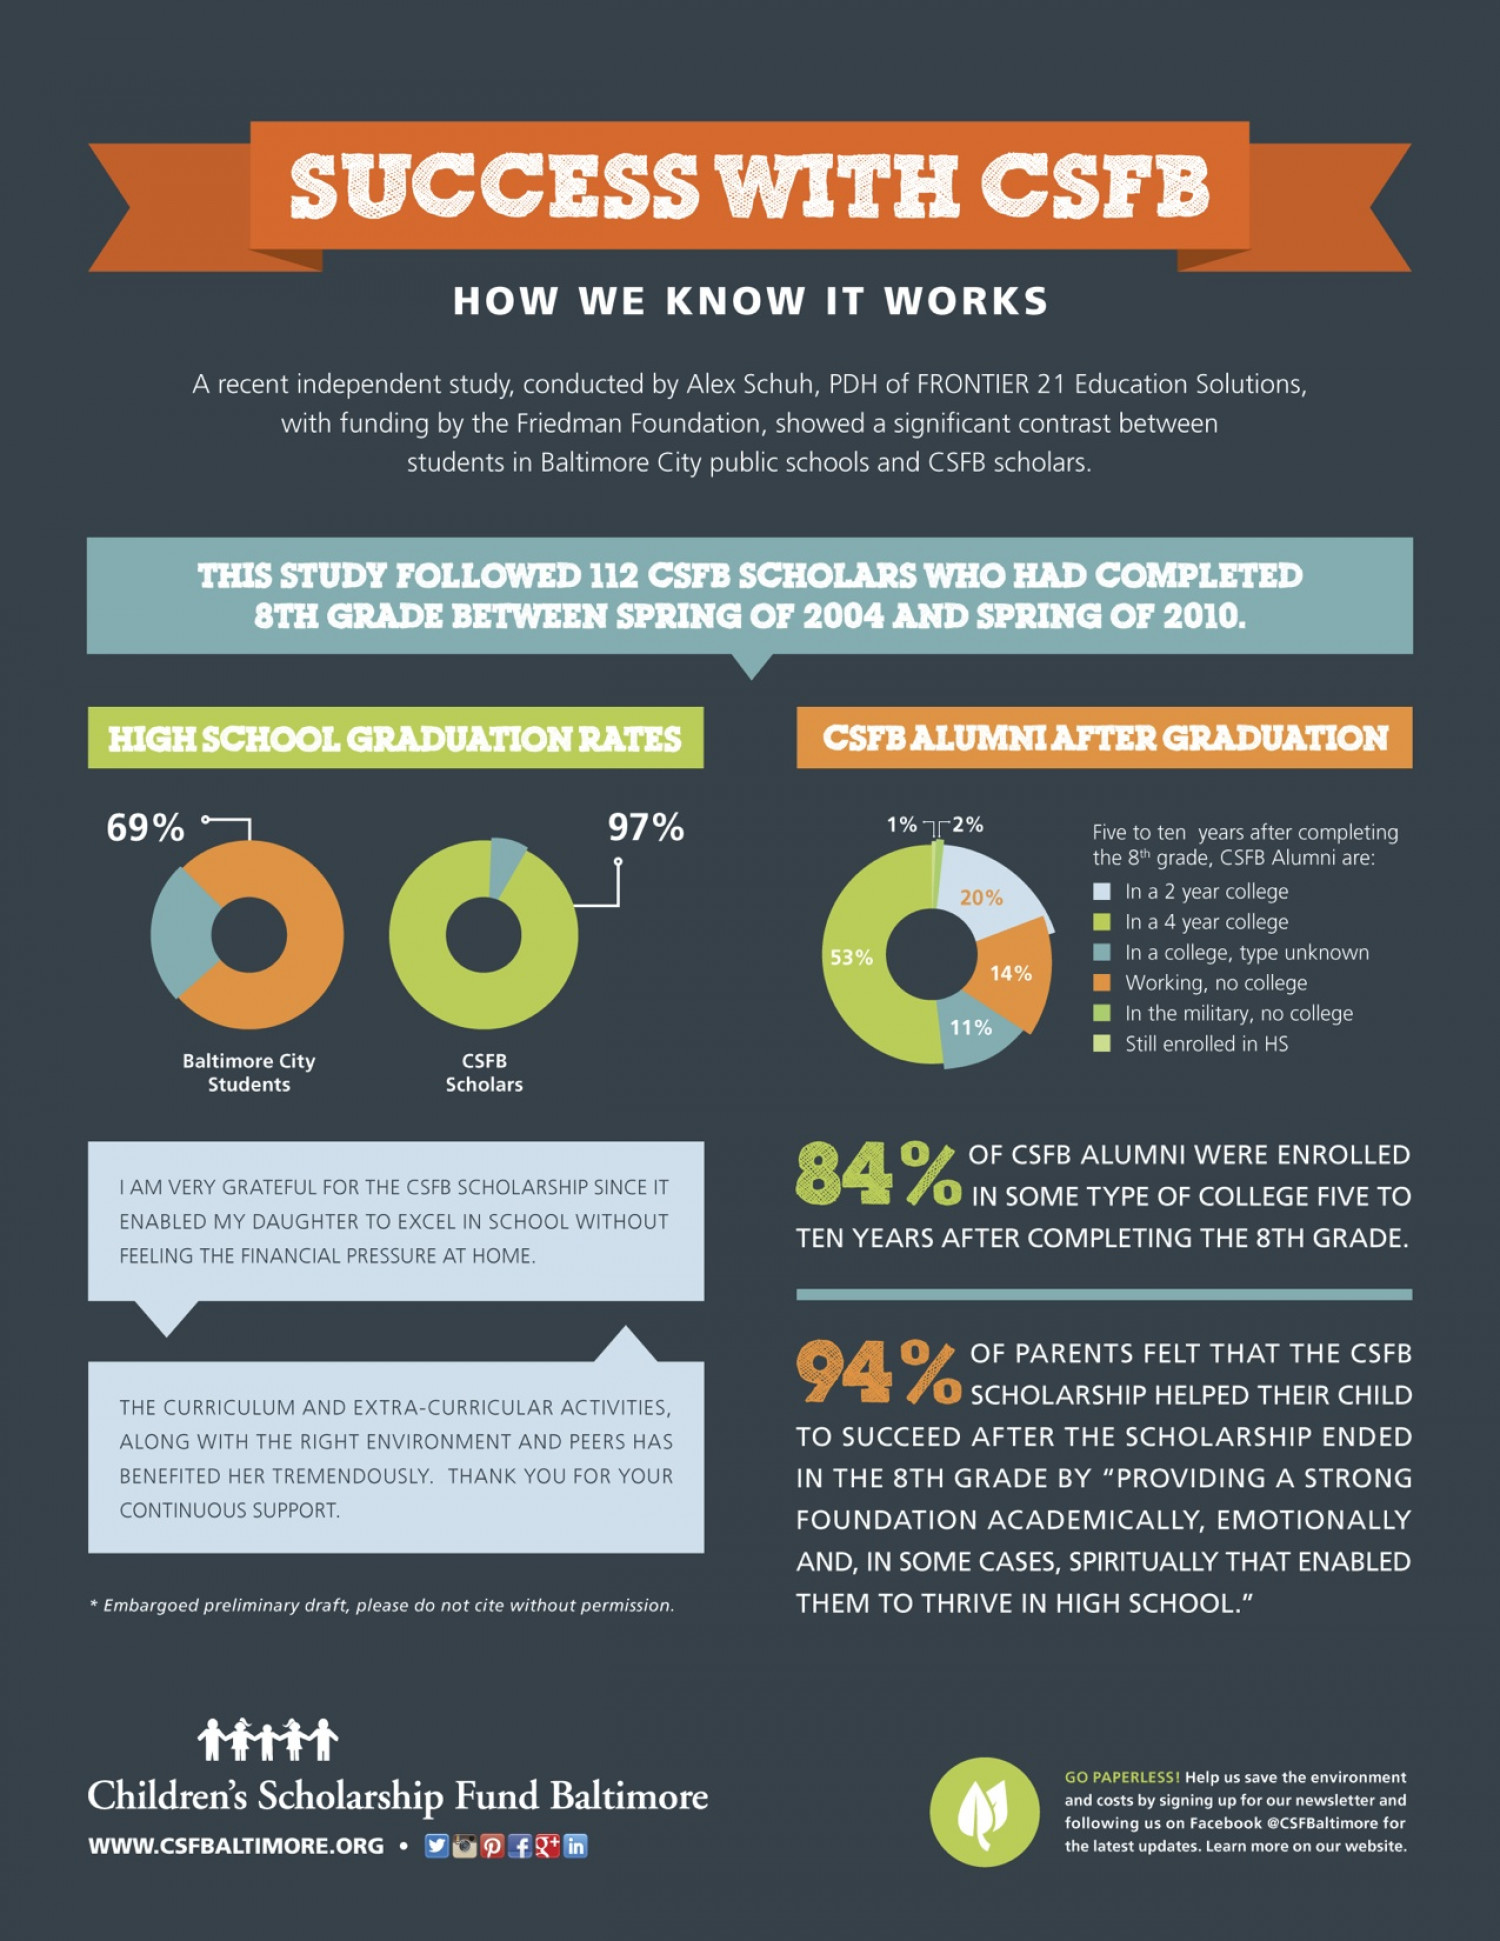 Success With CSFB: How We Know It Works Infographic